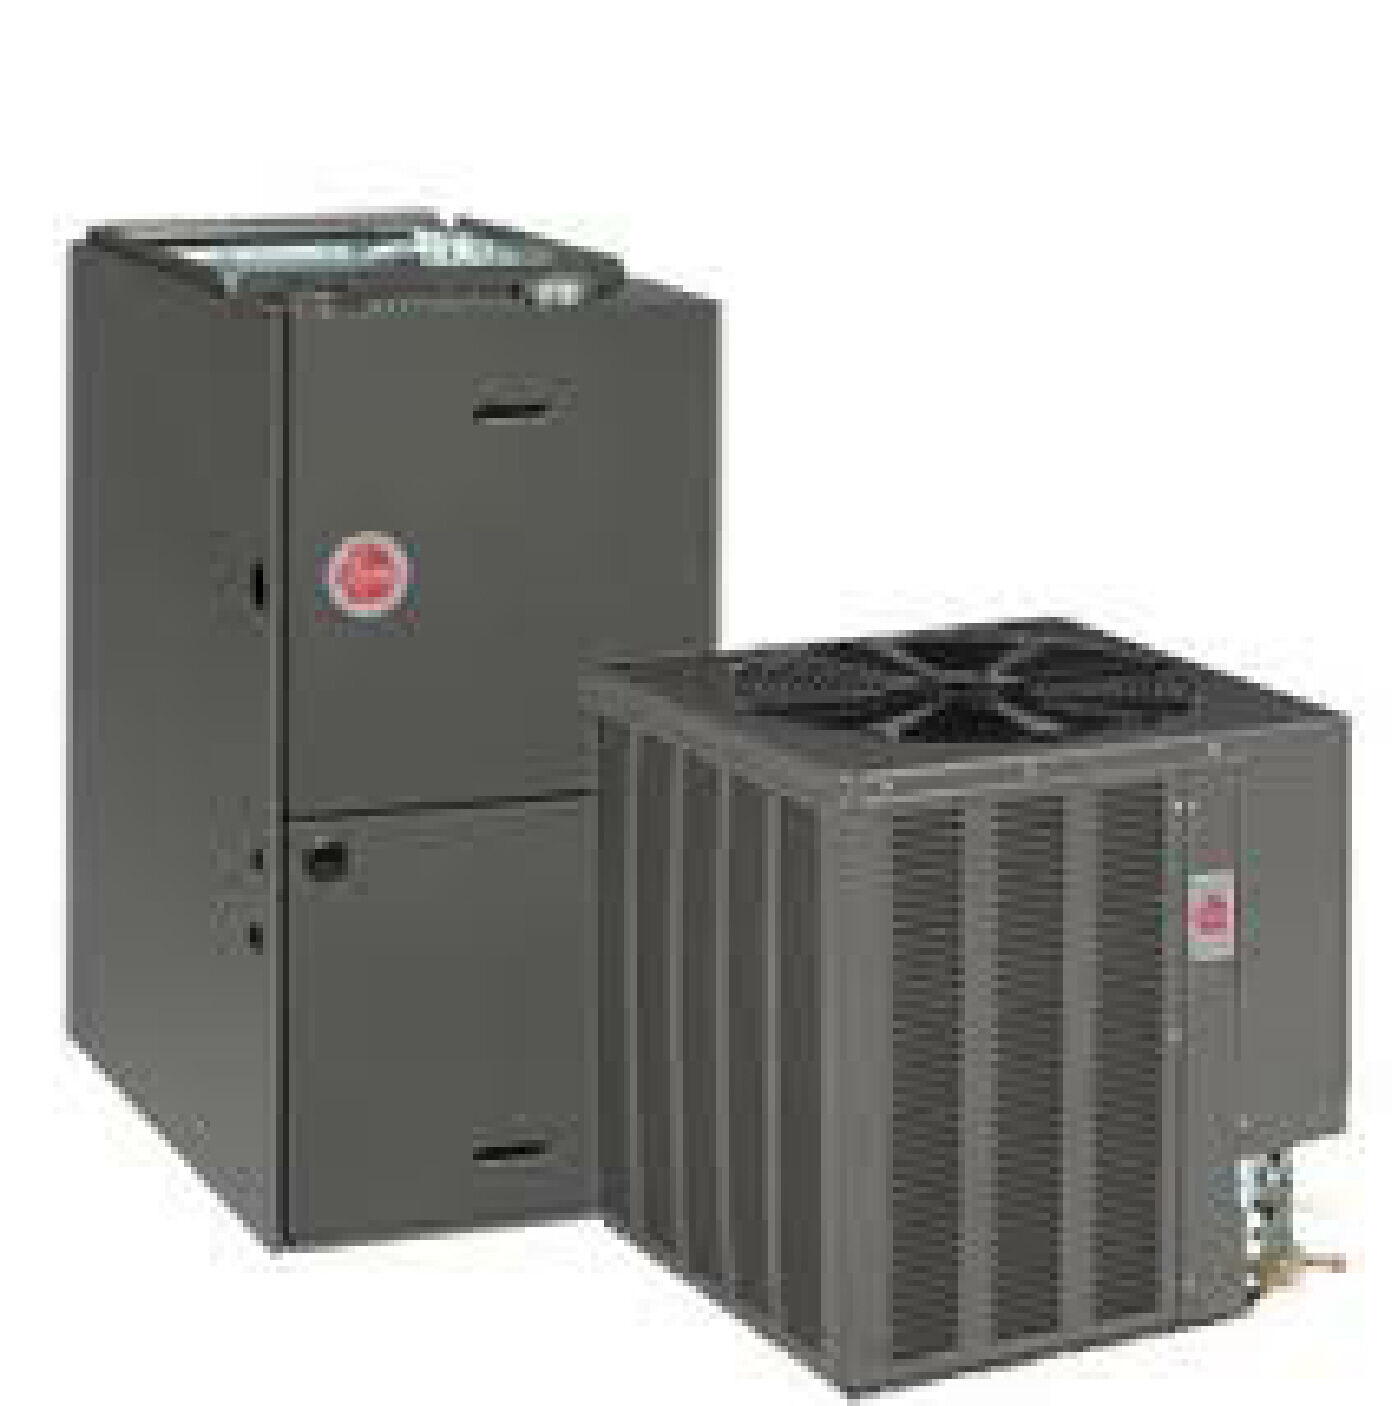 Mitsubishi Mr Slim 4 Zone Heat Pump With 3 9k Btu Indoor Units And 1 15k Btu Unit likewise C2 BFes Bueno Un Aire Acondicionado Central Para La Casa besides Air Conditioning And Heating Right System Right Price likewise Rheem 5 Ton 21 Evaporator Cased Coil in addition 3 5 Ton Goodman Gsx16 Straight Cool Condenser. on ac condensing unit prices